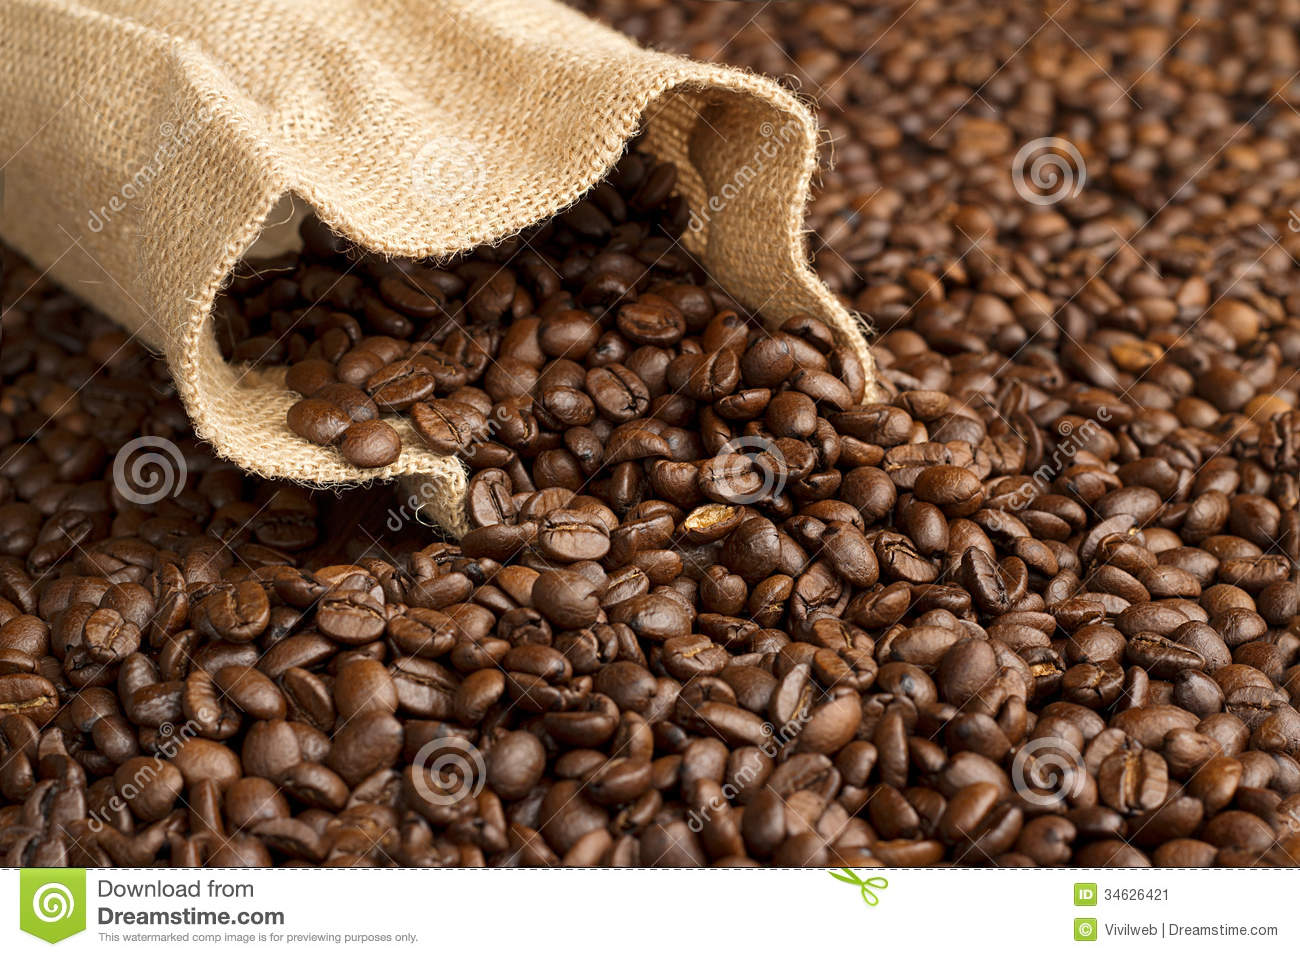 Jute bag on coffee beans stock image Image of cafe